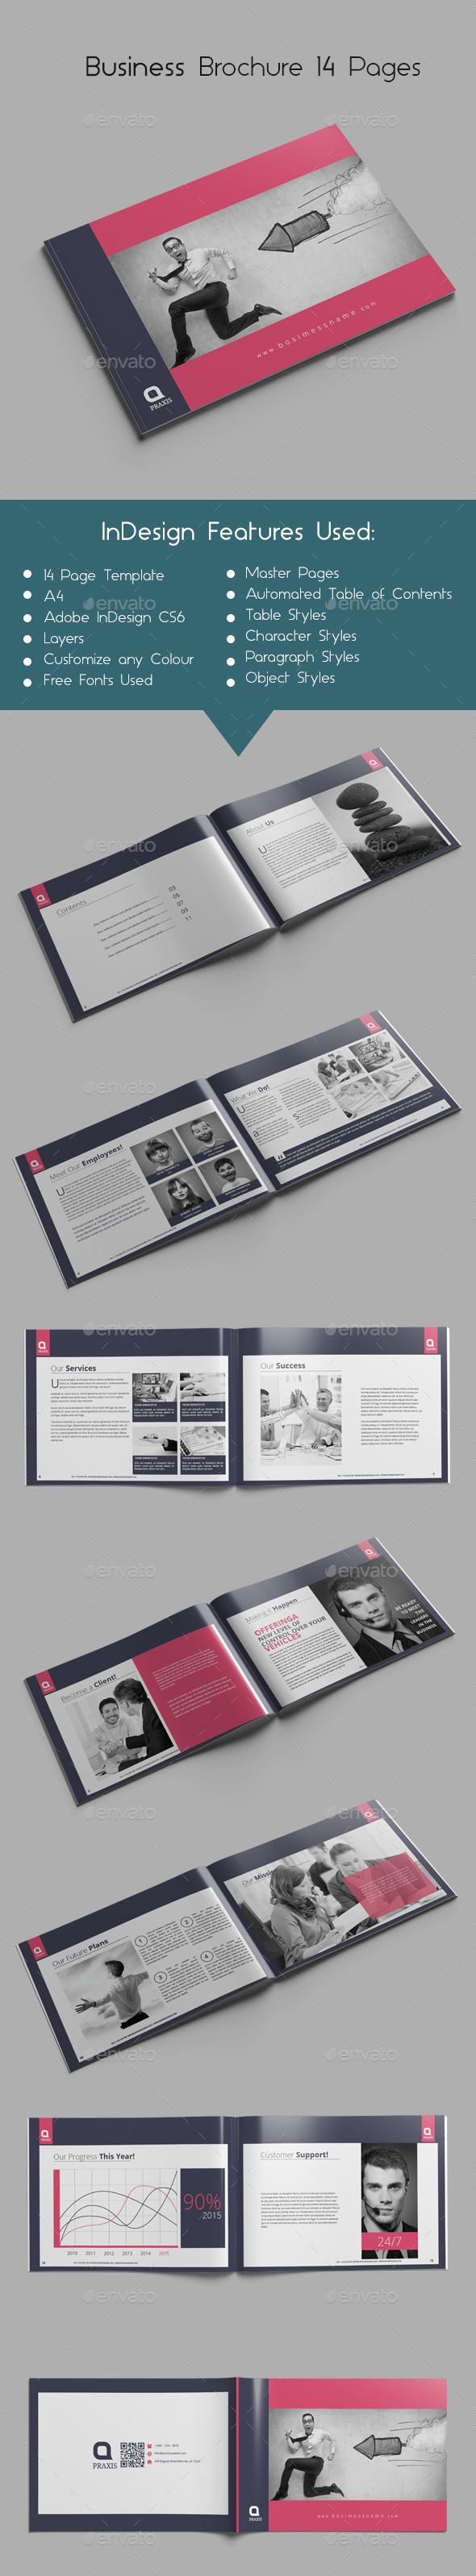 GraphicRiver Business Brochure 14 Pages 9790800